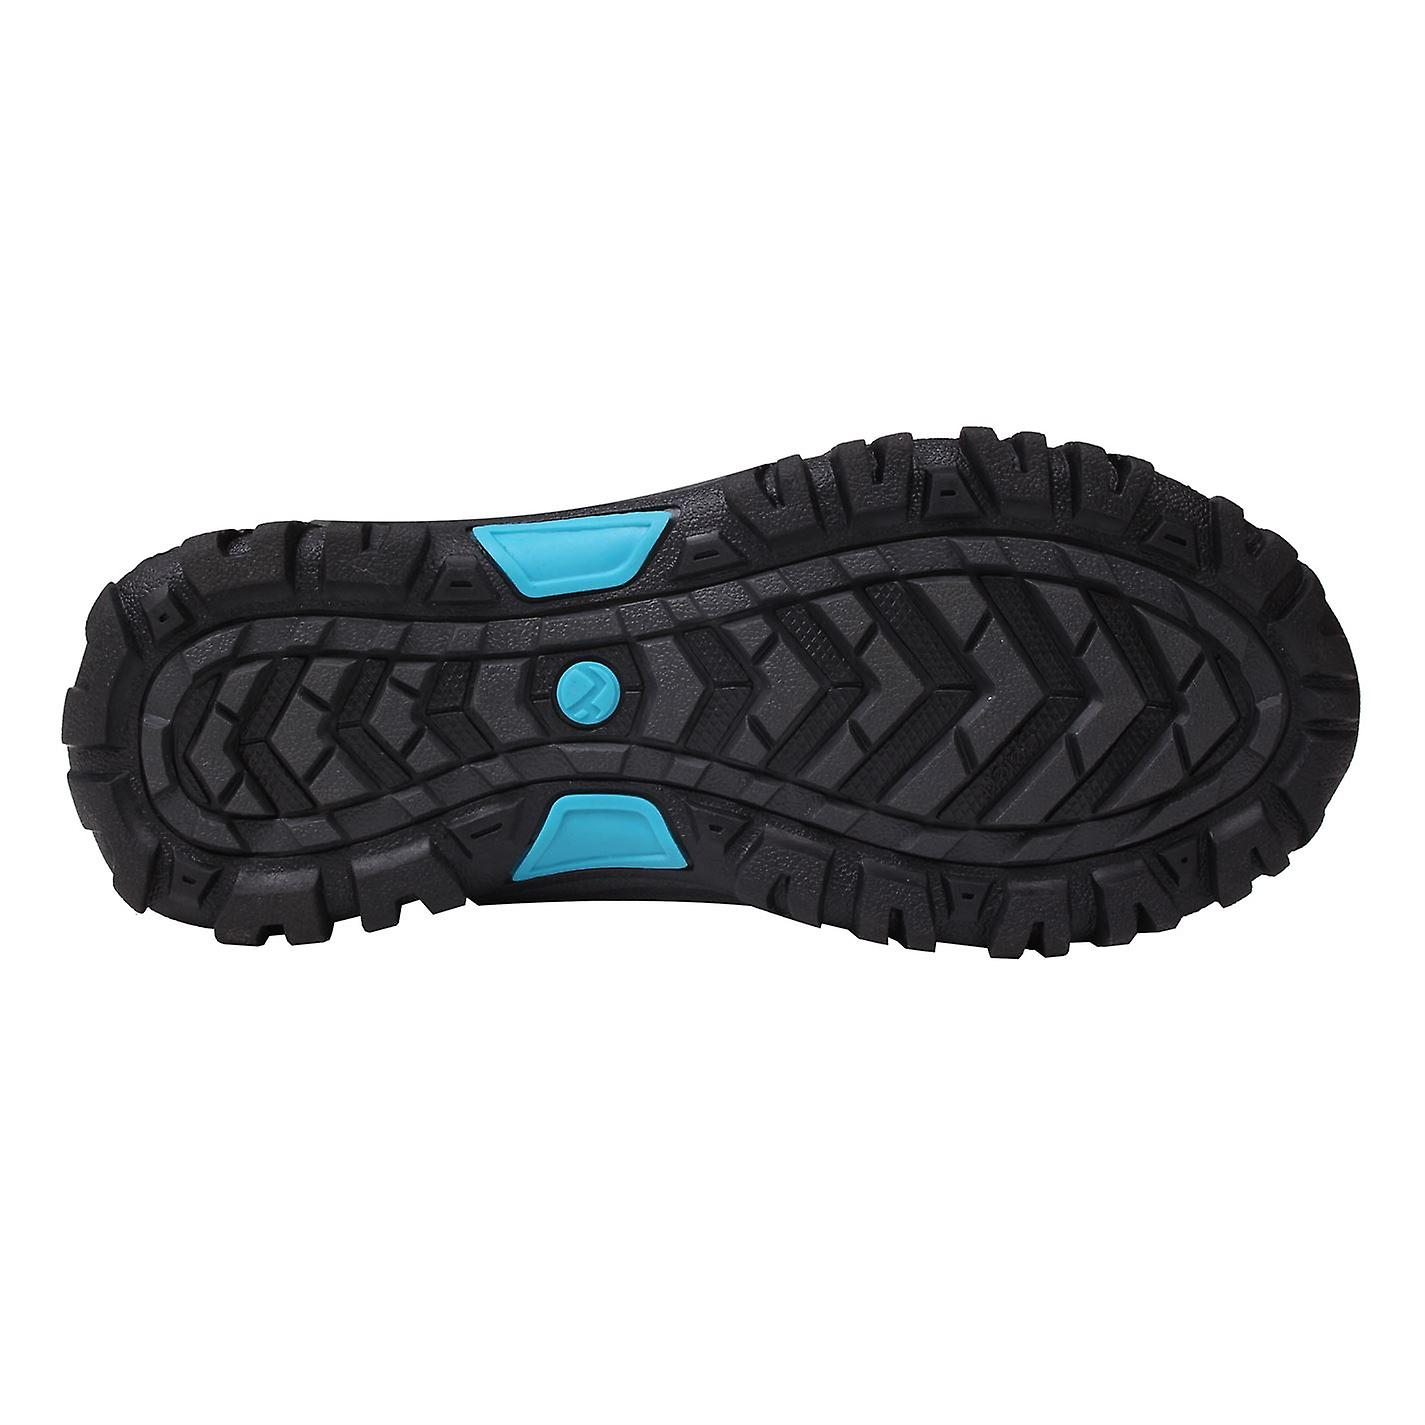 Gelert Childs Horizon Low Boots Laces Fastened Walking Waterproof Footwear